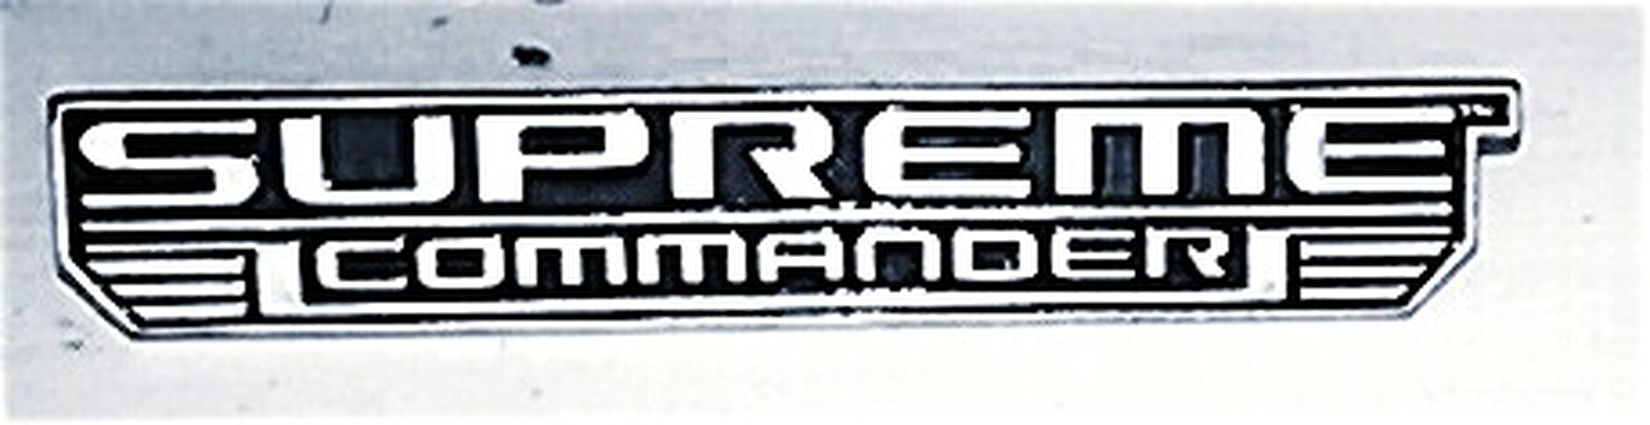 Badges & Patches BadgesAndPatches Badges And Patches Badges/patches Badges&patches No People Supreme Commander Collectables Badge Badge Collection Collector Collectable Items Check This Out Blackandwhite Badges Supreme Commander ☺️☺️ Badges. Black&white